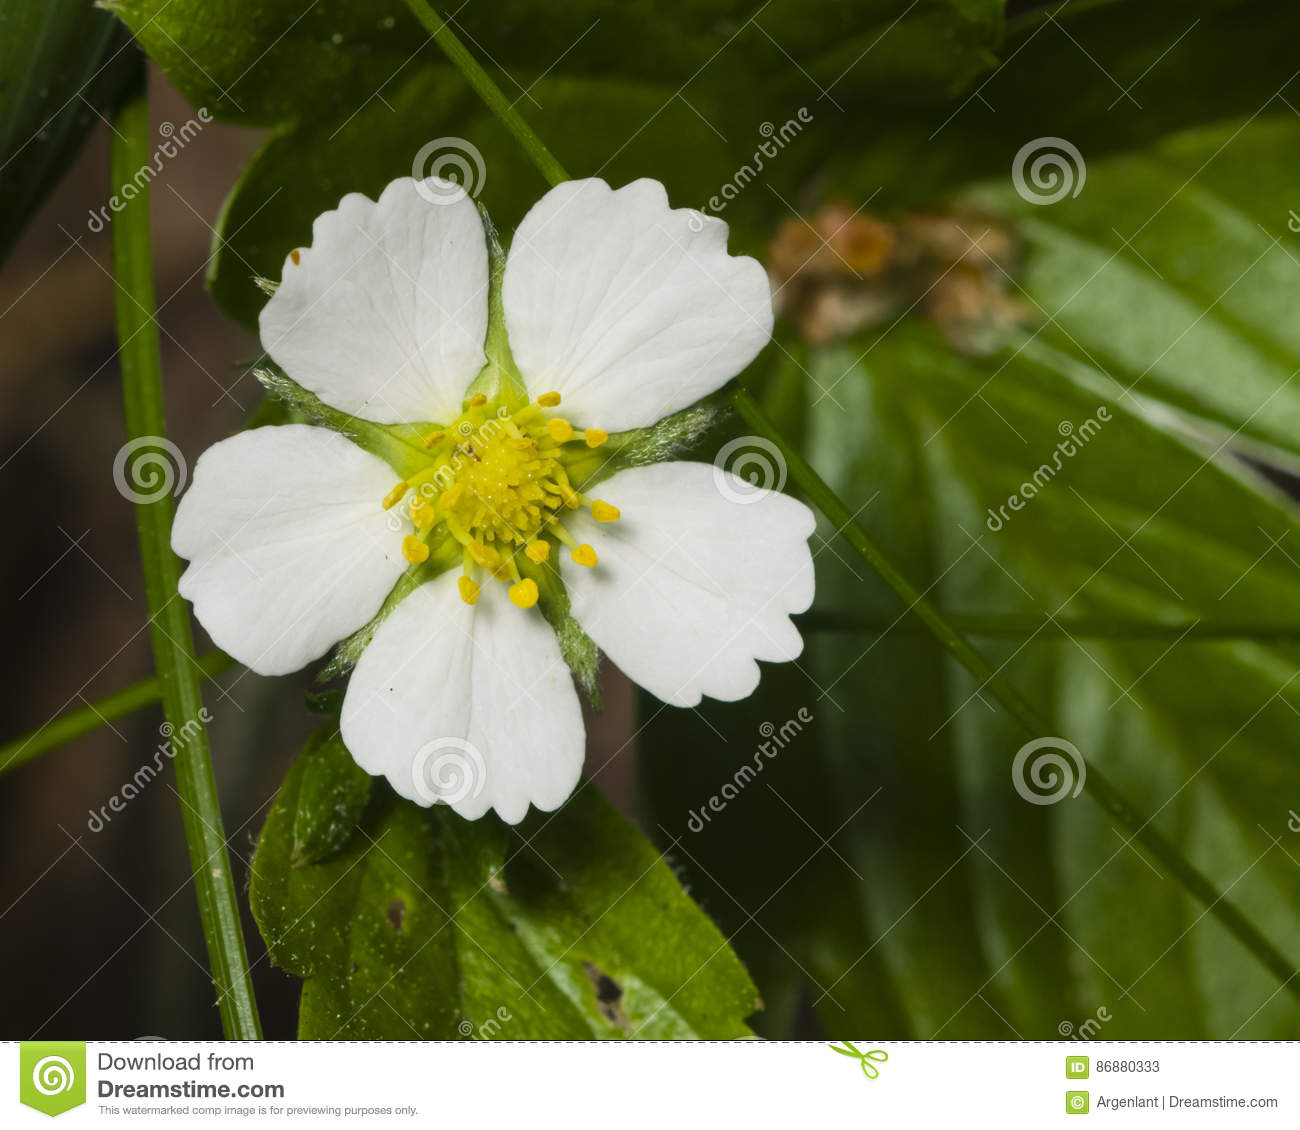 Wild Strawberry Flower With White Petals Close Up Selective Focus